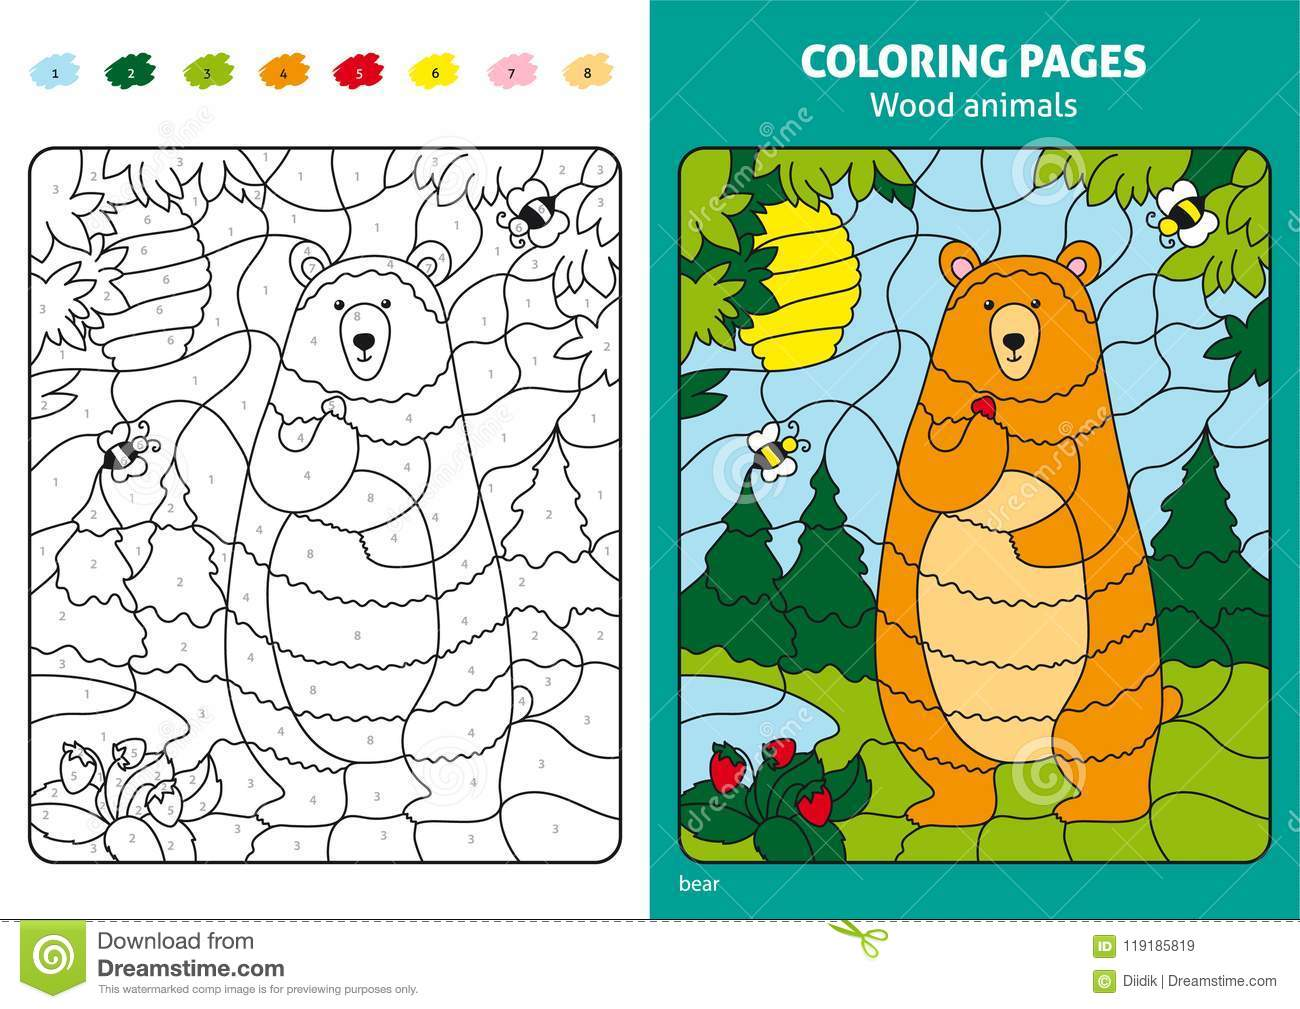 Wood Animals Coloring Page For Kids, Bear In Forest. Stock Vector ...